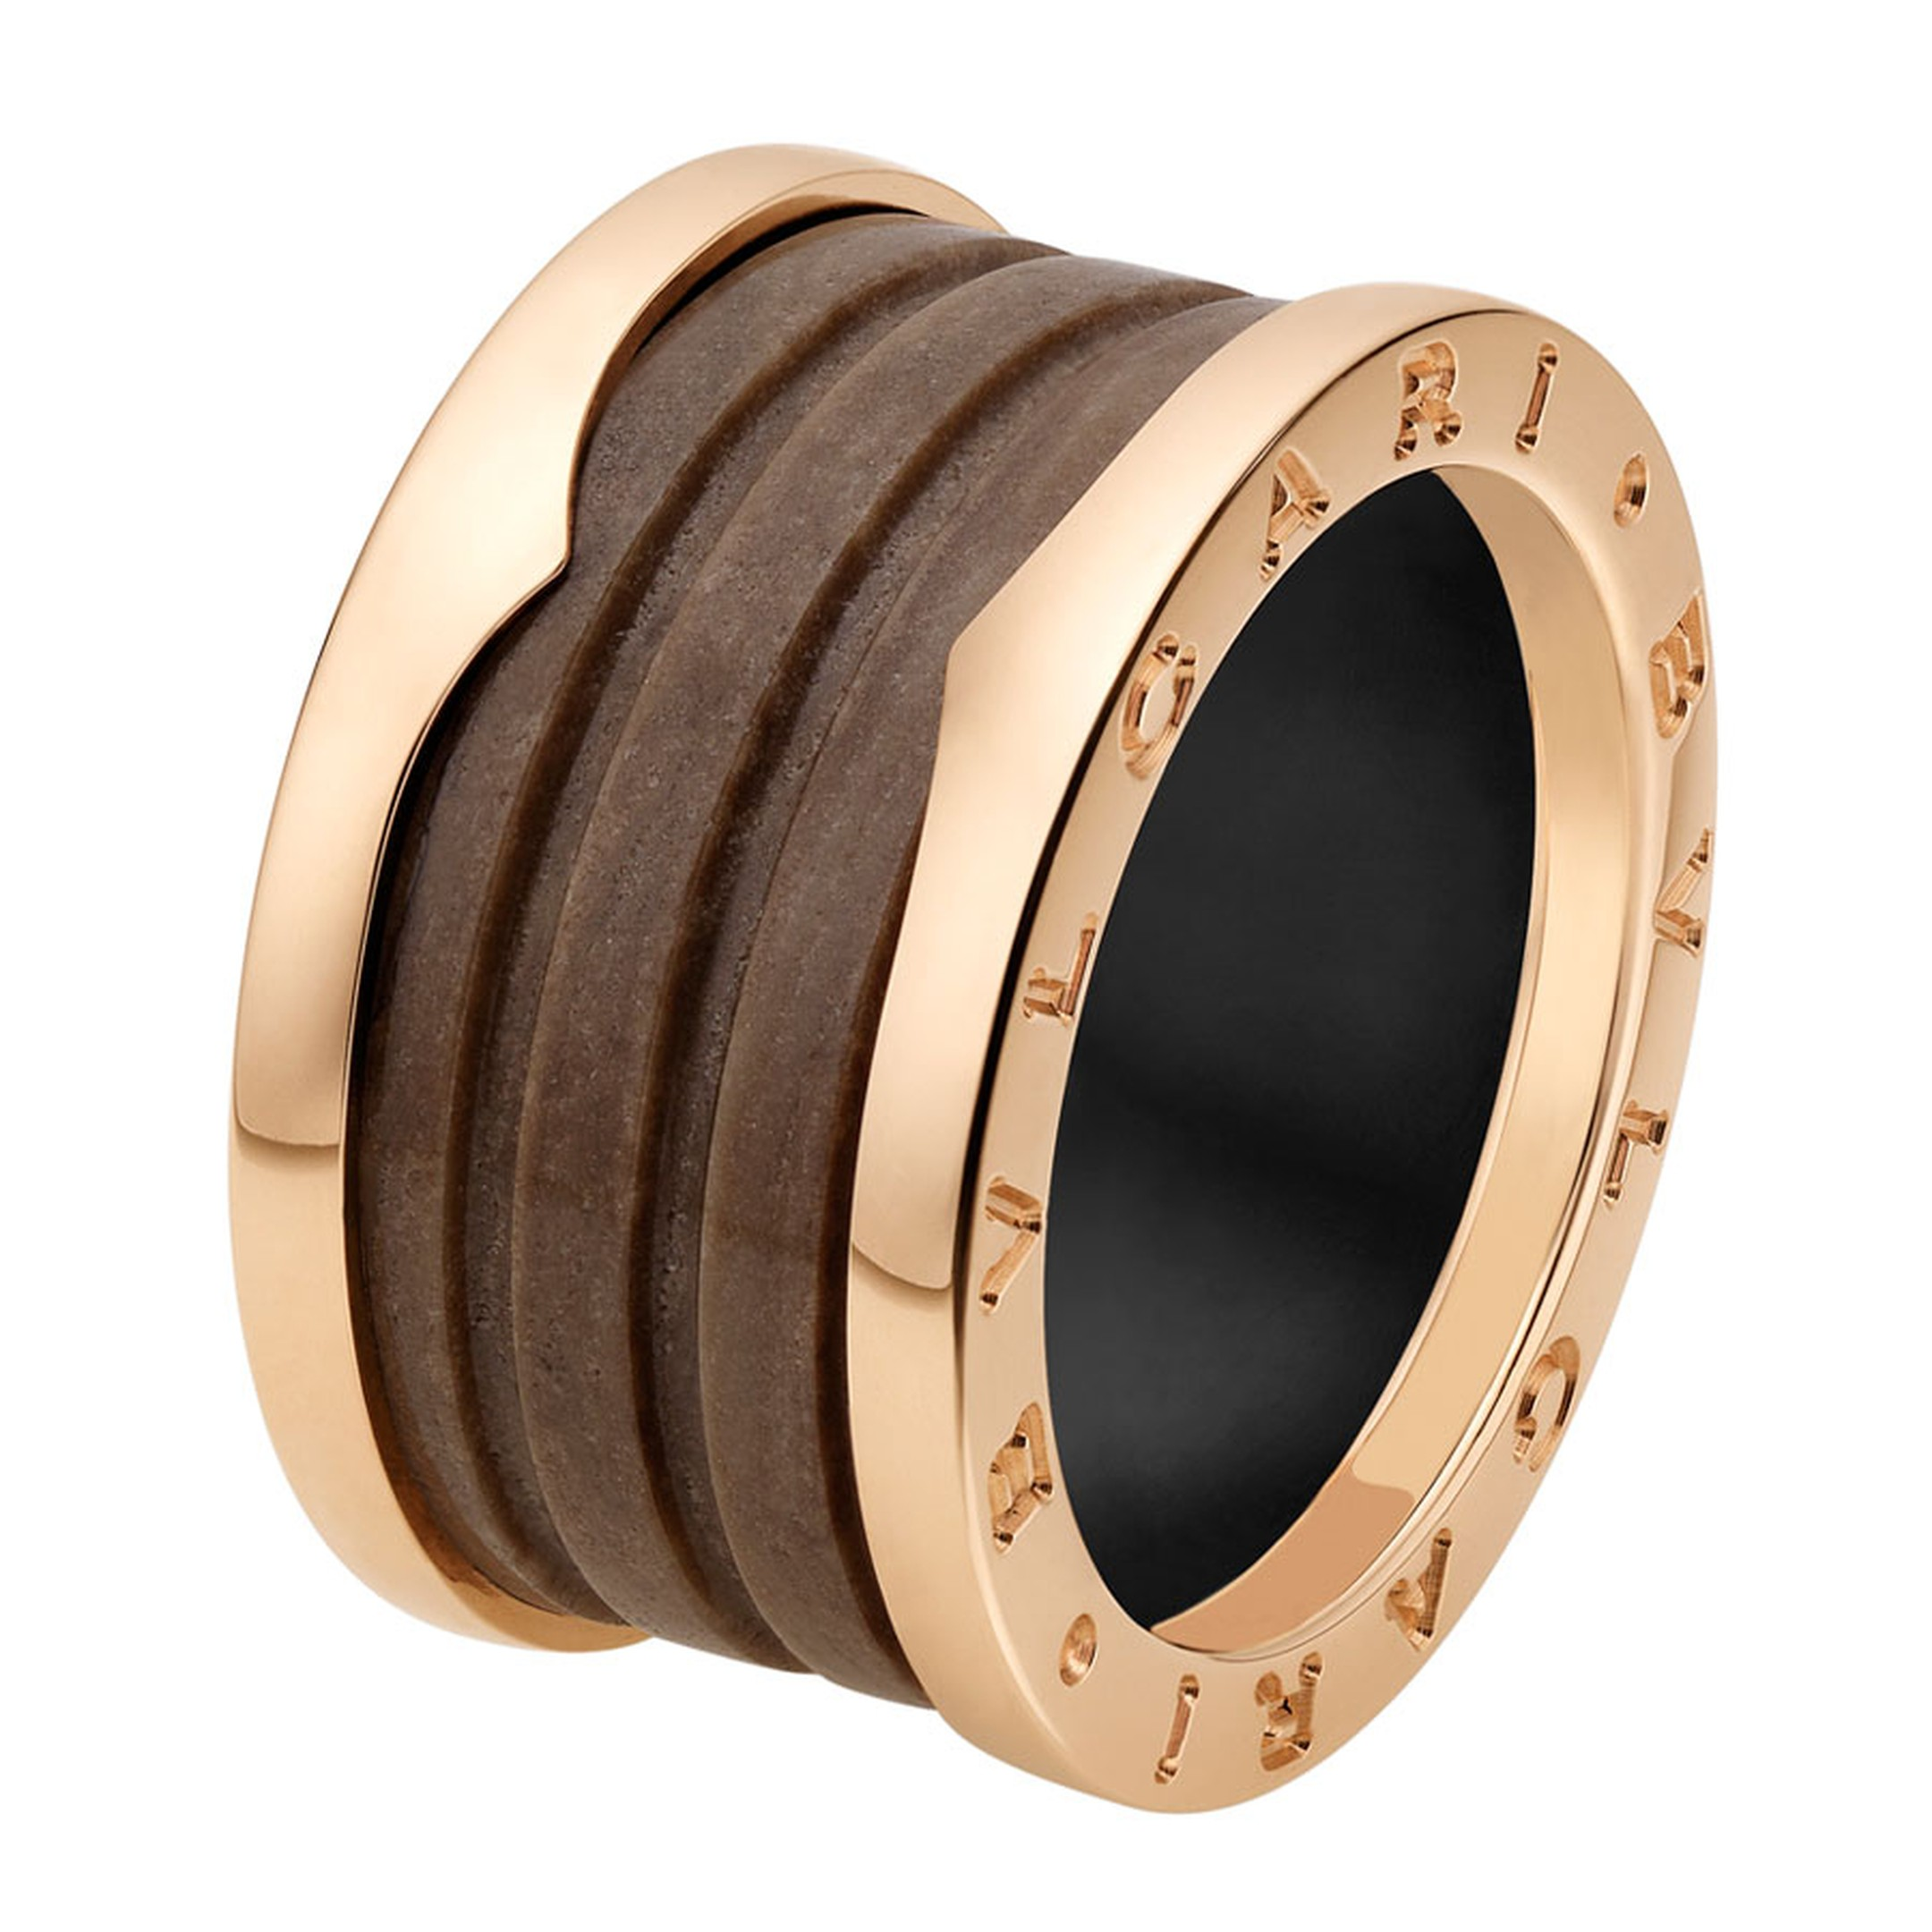 Bulgari Bzero1 pink gold and brown marble 4-band ring _ 790 GBP